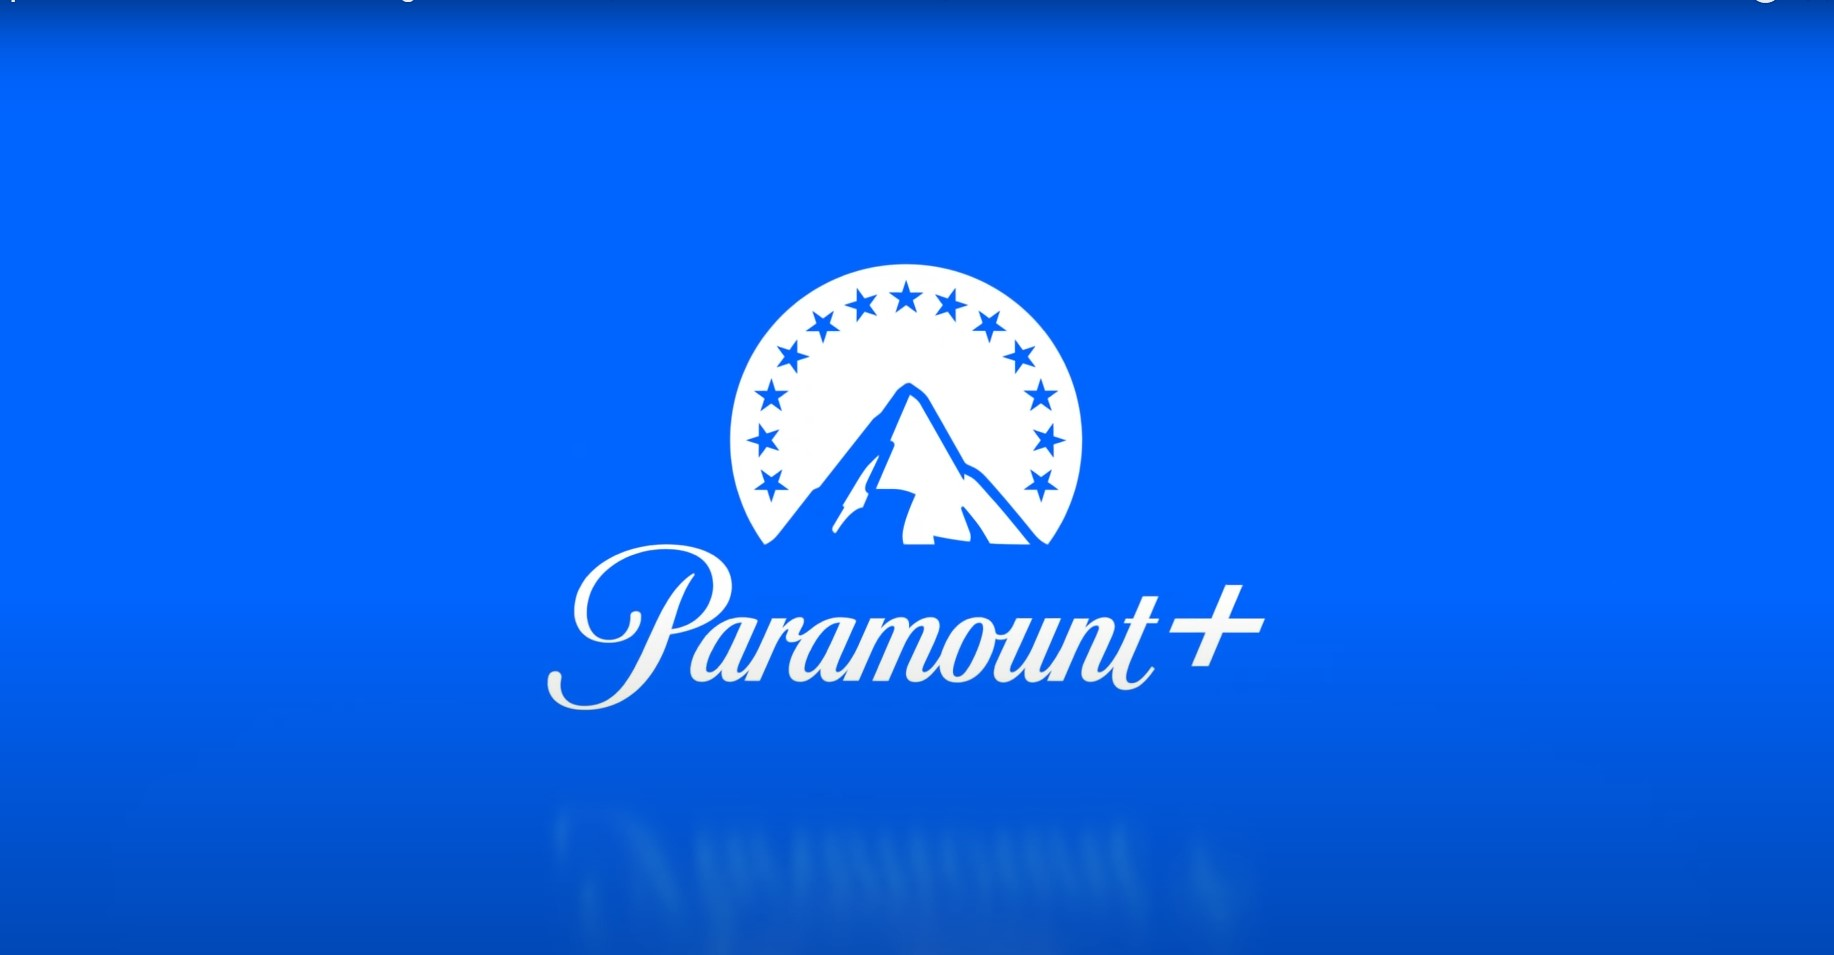 Download Paramount+ APK With Dolby and HDR Support